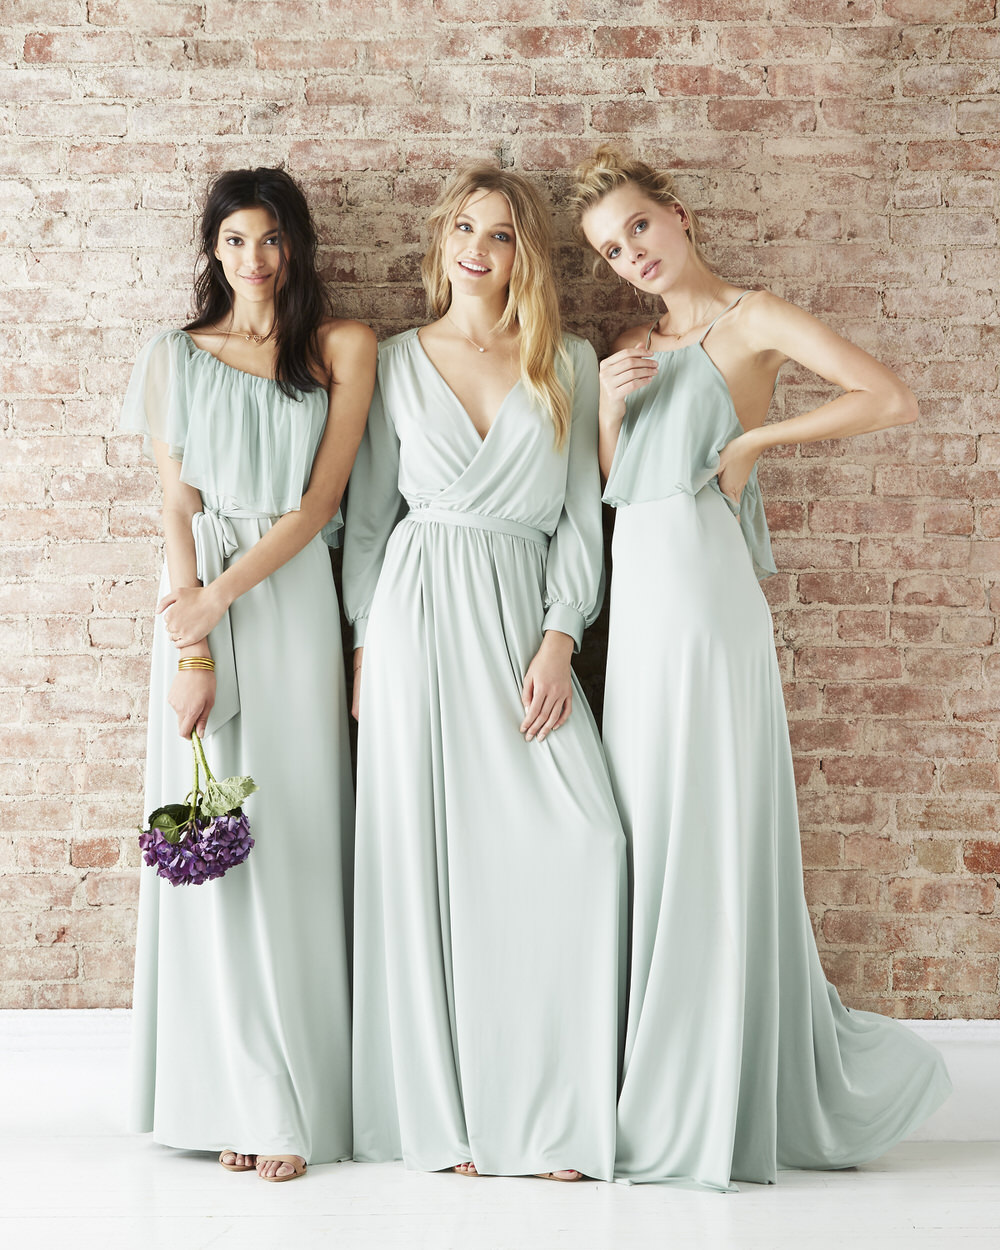 Bridesmaid dresses sage green choice image braidsmaid dress bridesmaid dresses sage green images braidsmaid dress cocktail bridesmaid dresses sage green image collections braidsmaid dress ombrellifo Image collections